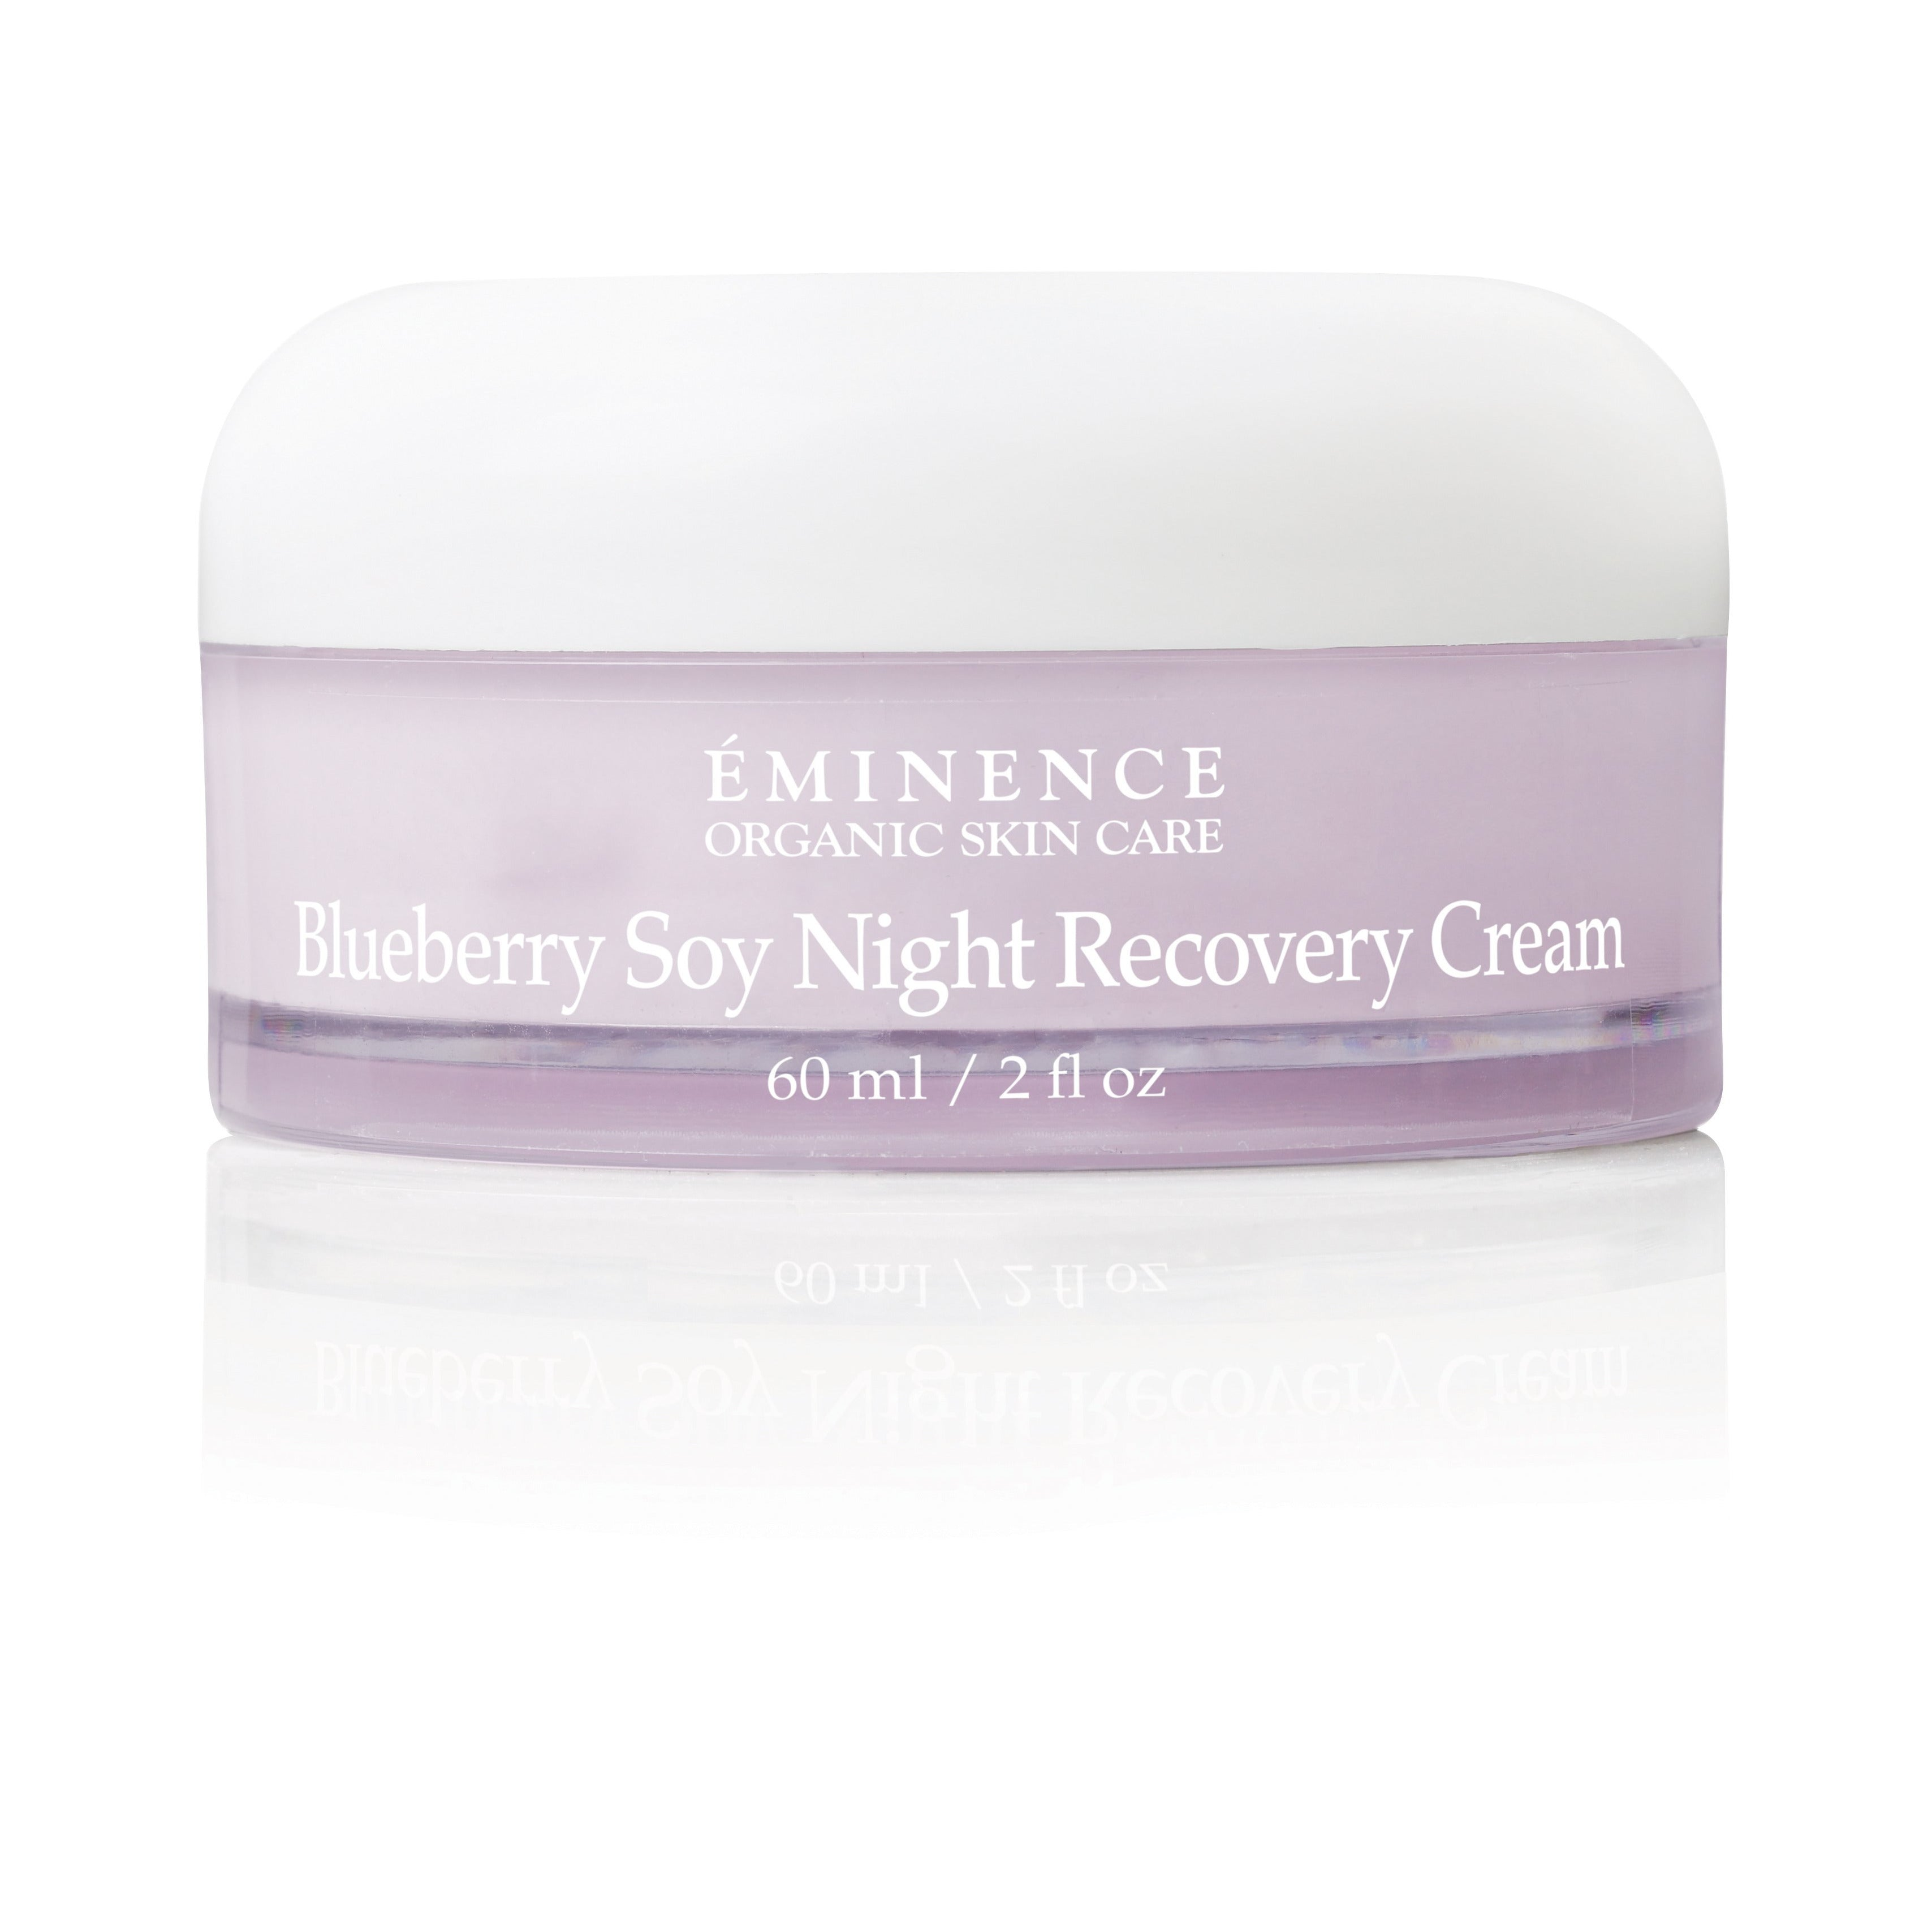 Eminence Organics Blueberry Soy Night Recovery Cream